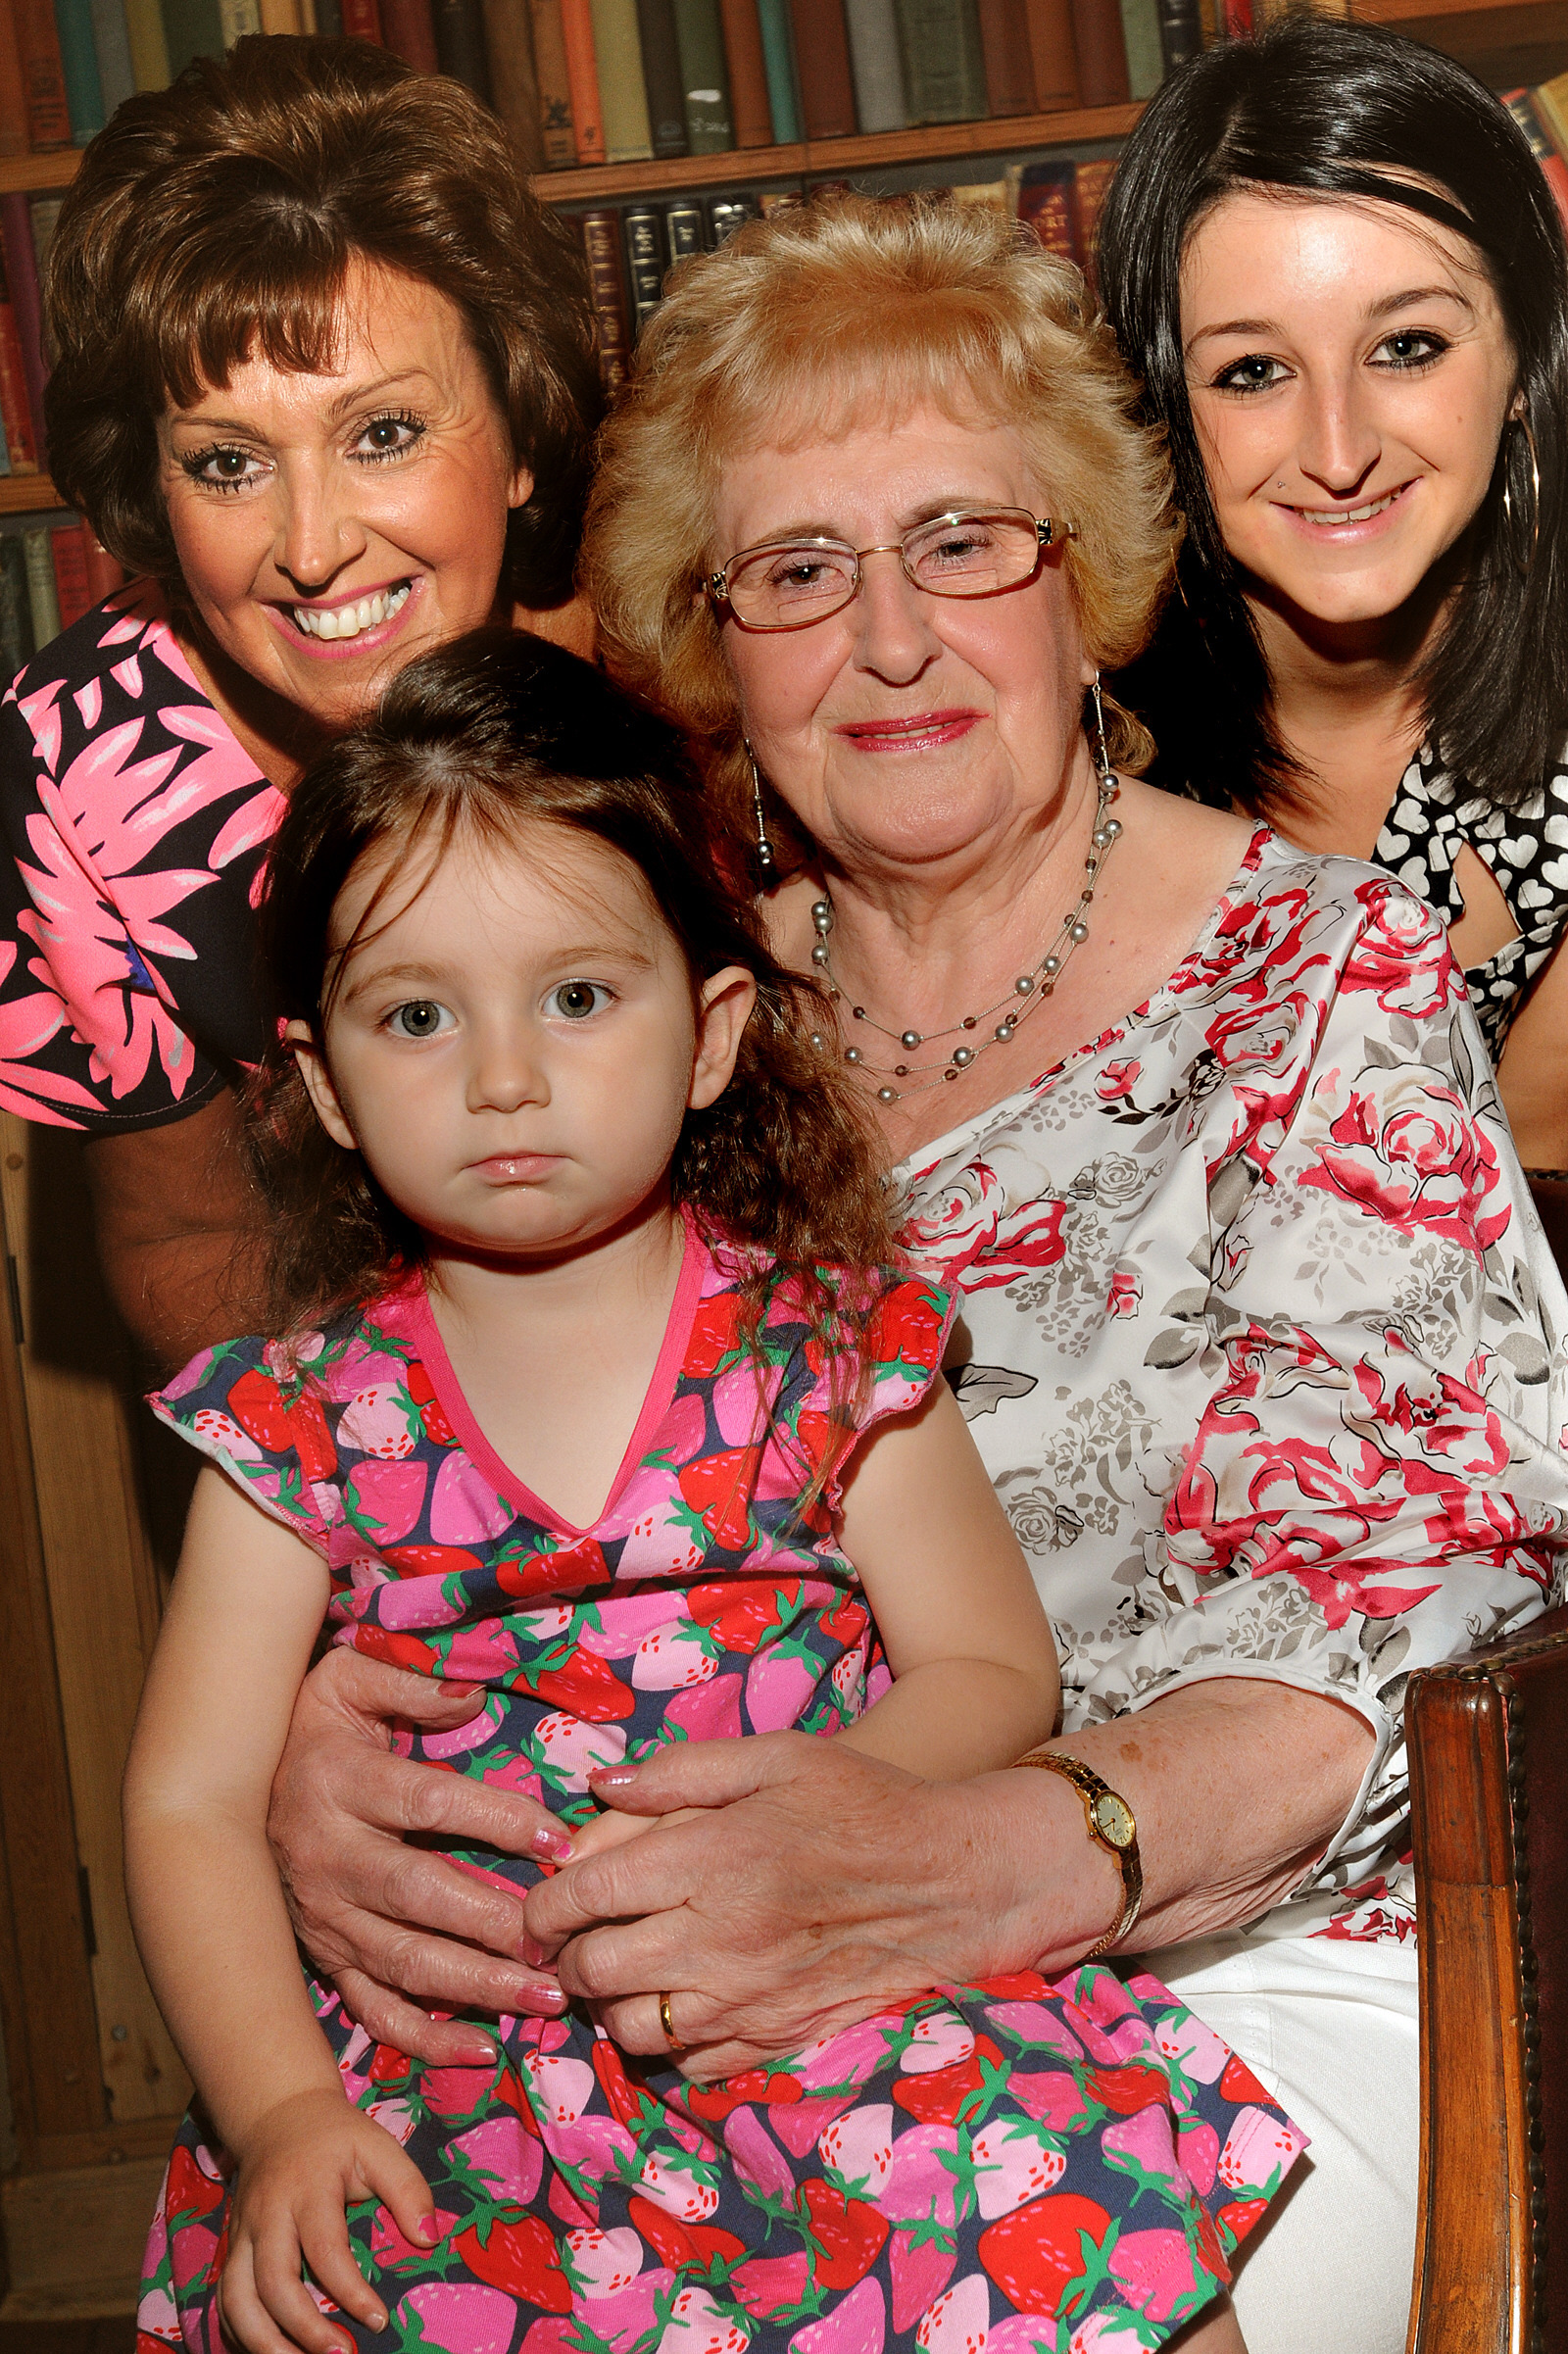 Evelyn Maw celebrated her 80th birthday at the Pavillion Hotel in Fulford with daughter Karen Franks, 49, left, grandaughter Amy Franks, 24, and great-grandaughter Megan, two